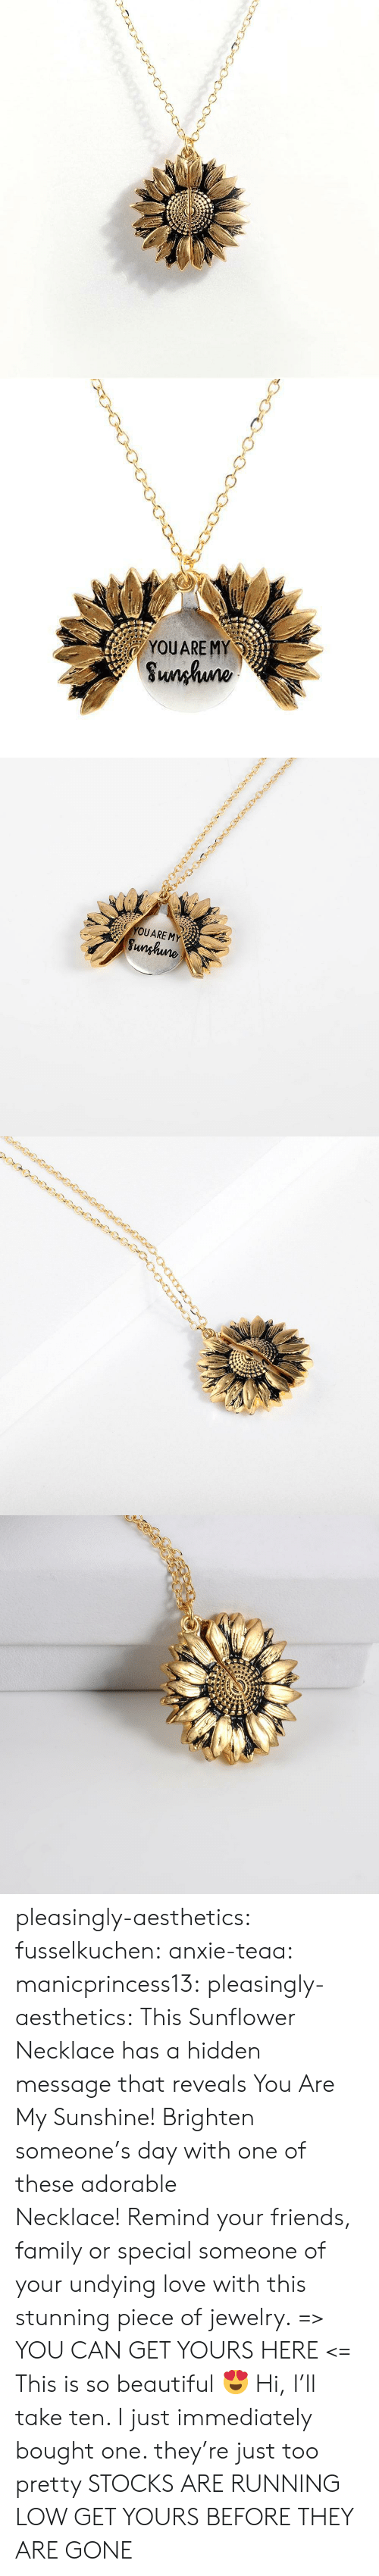 Beautiful, Family, and Friends: YOUARE MY  Sunhuno   YOUARE MY  Sunghune pleasingly-aesthetics:  fusselkuchen: anxie-teaa:   manicprincess13:   pleasingly-aesthetics:  This Sunflower Necklace has a hidden message that reveals You Are My Sunshine! Brighten someone's day with one of these adorable Necklace!Remind your friends, family or special someone of your undying love with this stunning piece of jewelry. => YOU CAN GET YOURS HERE <=   This is so beautiful ?    Hi, I'll take ten.    I just immediately bought one. they're just too pretty   STOCKS ARE RUNNING LOW GET YOURS BEFORE THEY ARE GONE